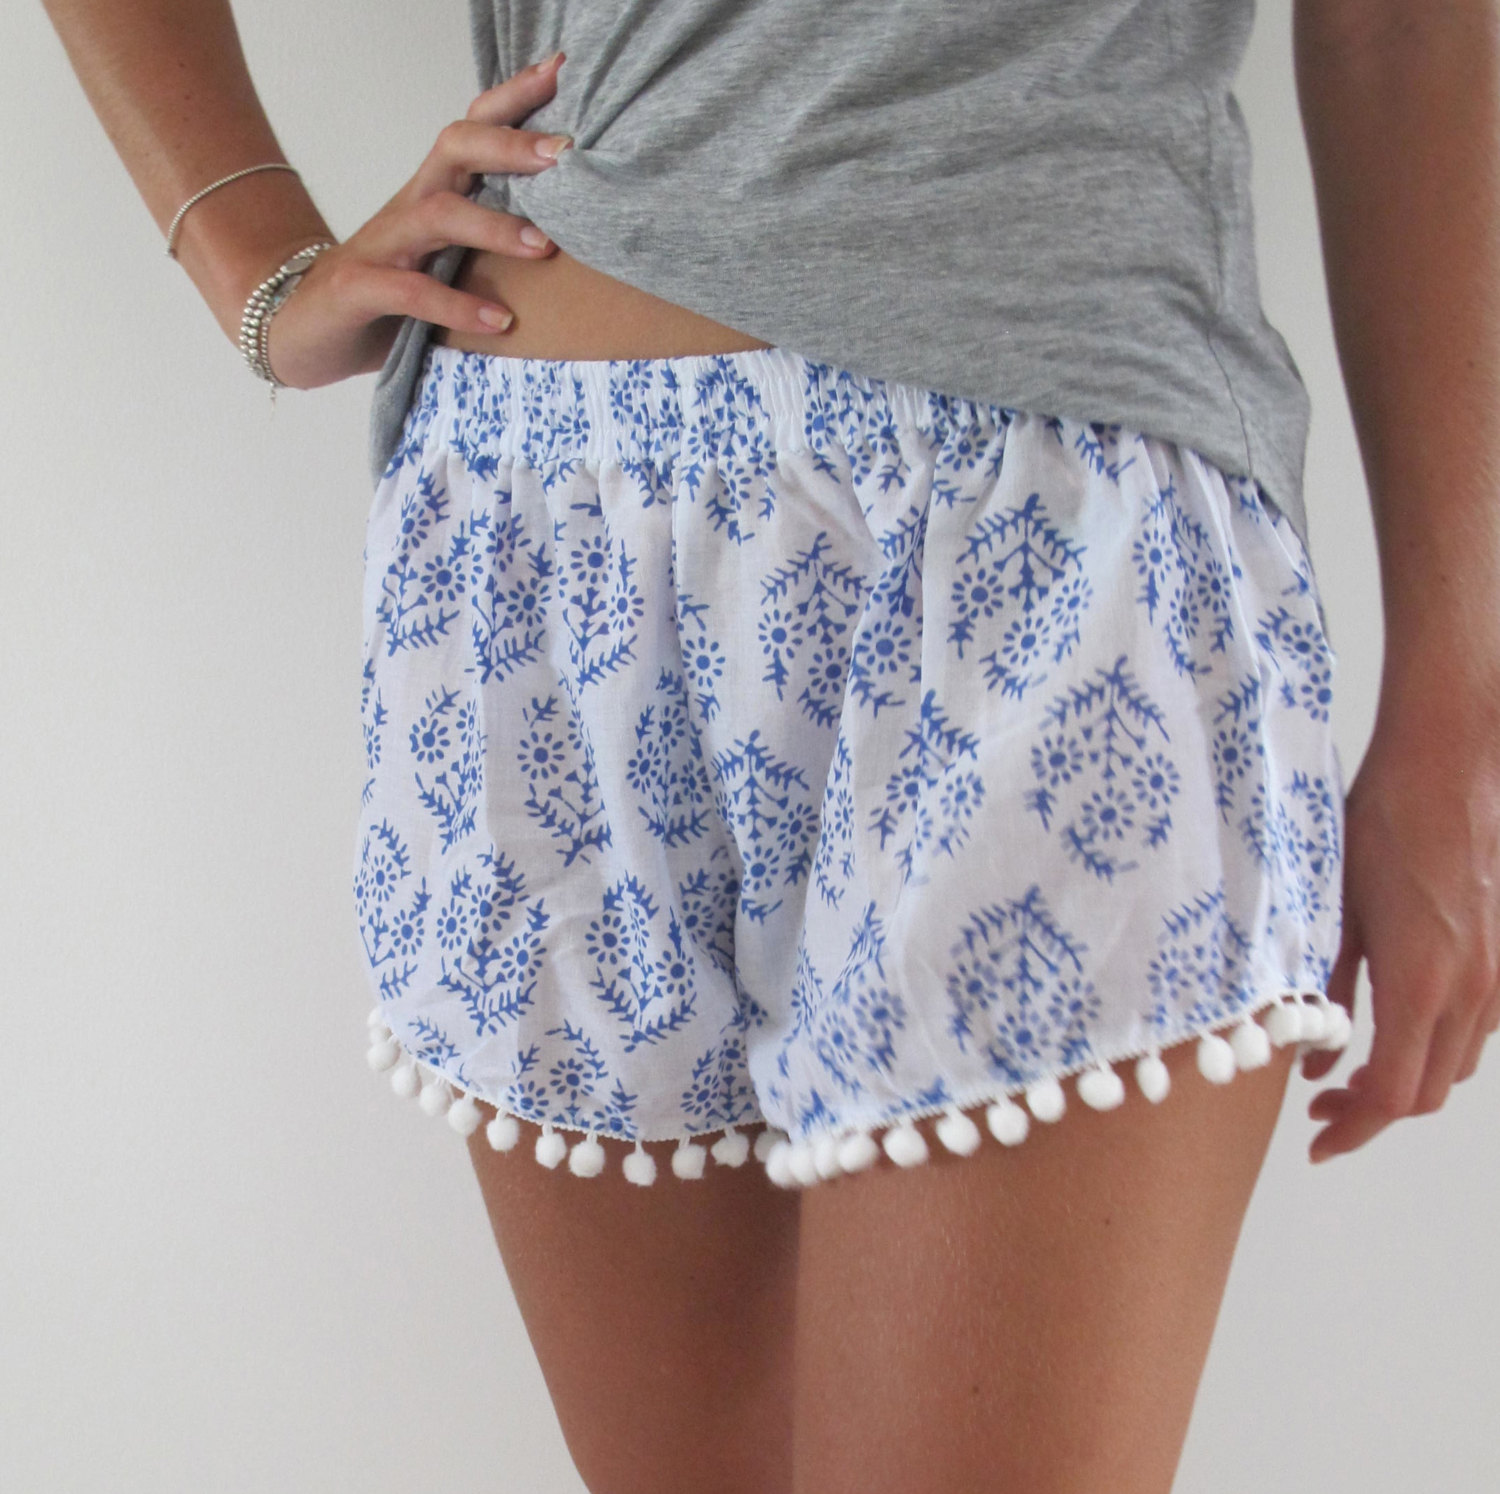 Pom pom shorts, blue & white print trendy beach shorts